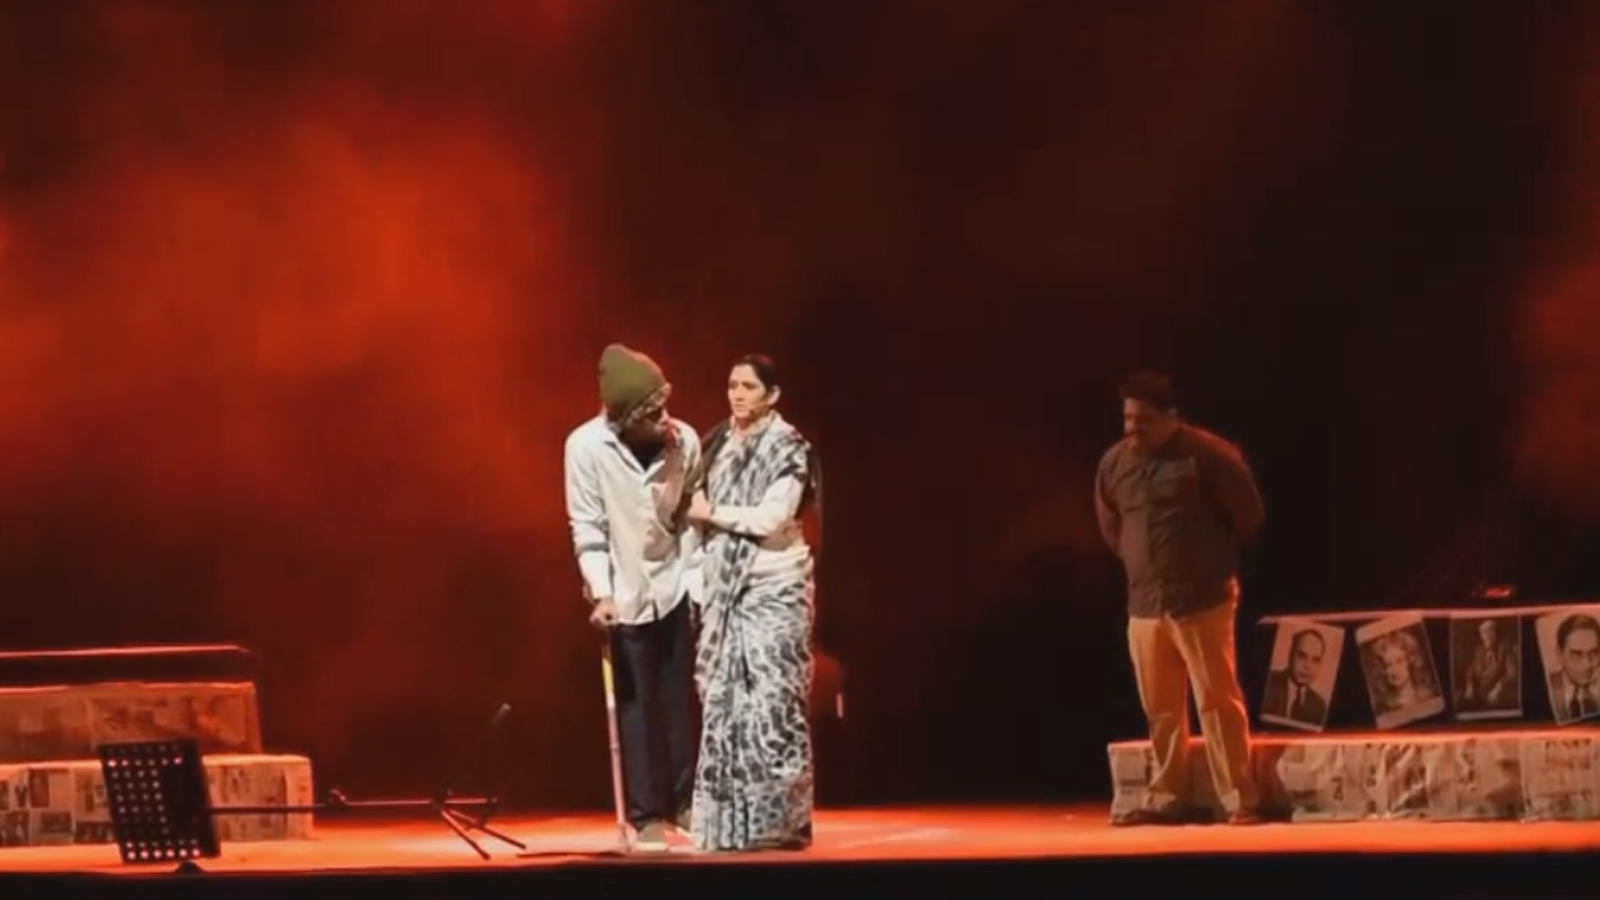 Theatre fest in Jaipur concludes with Makarand Deshpande's powerful act